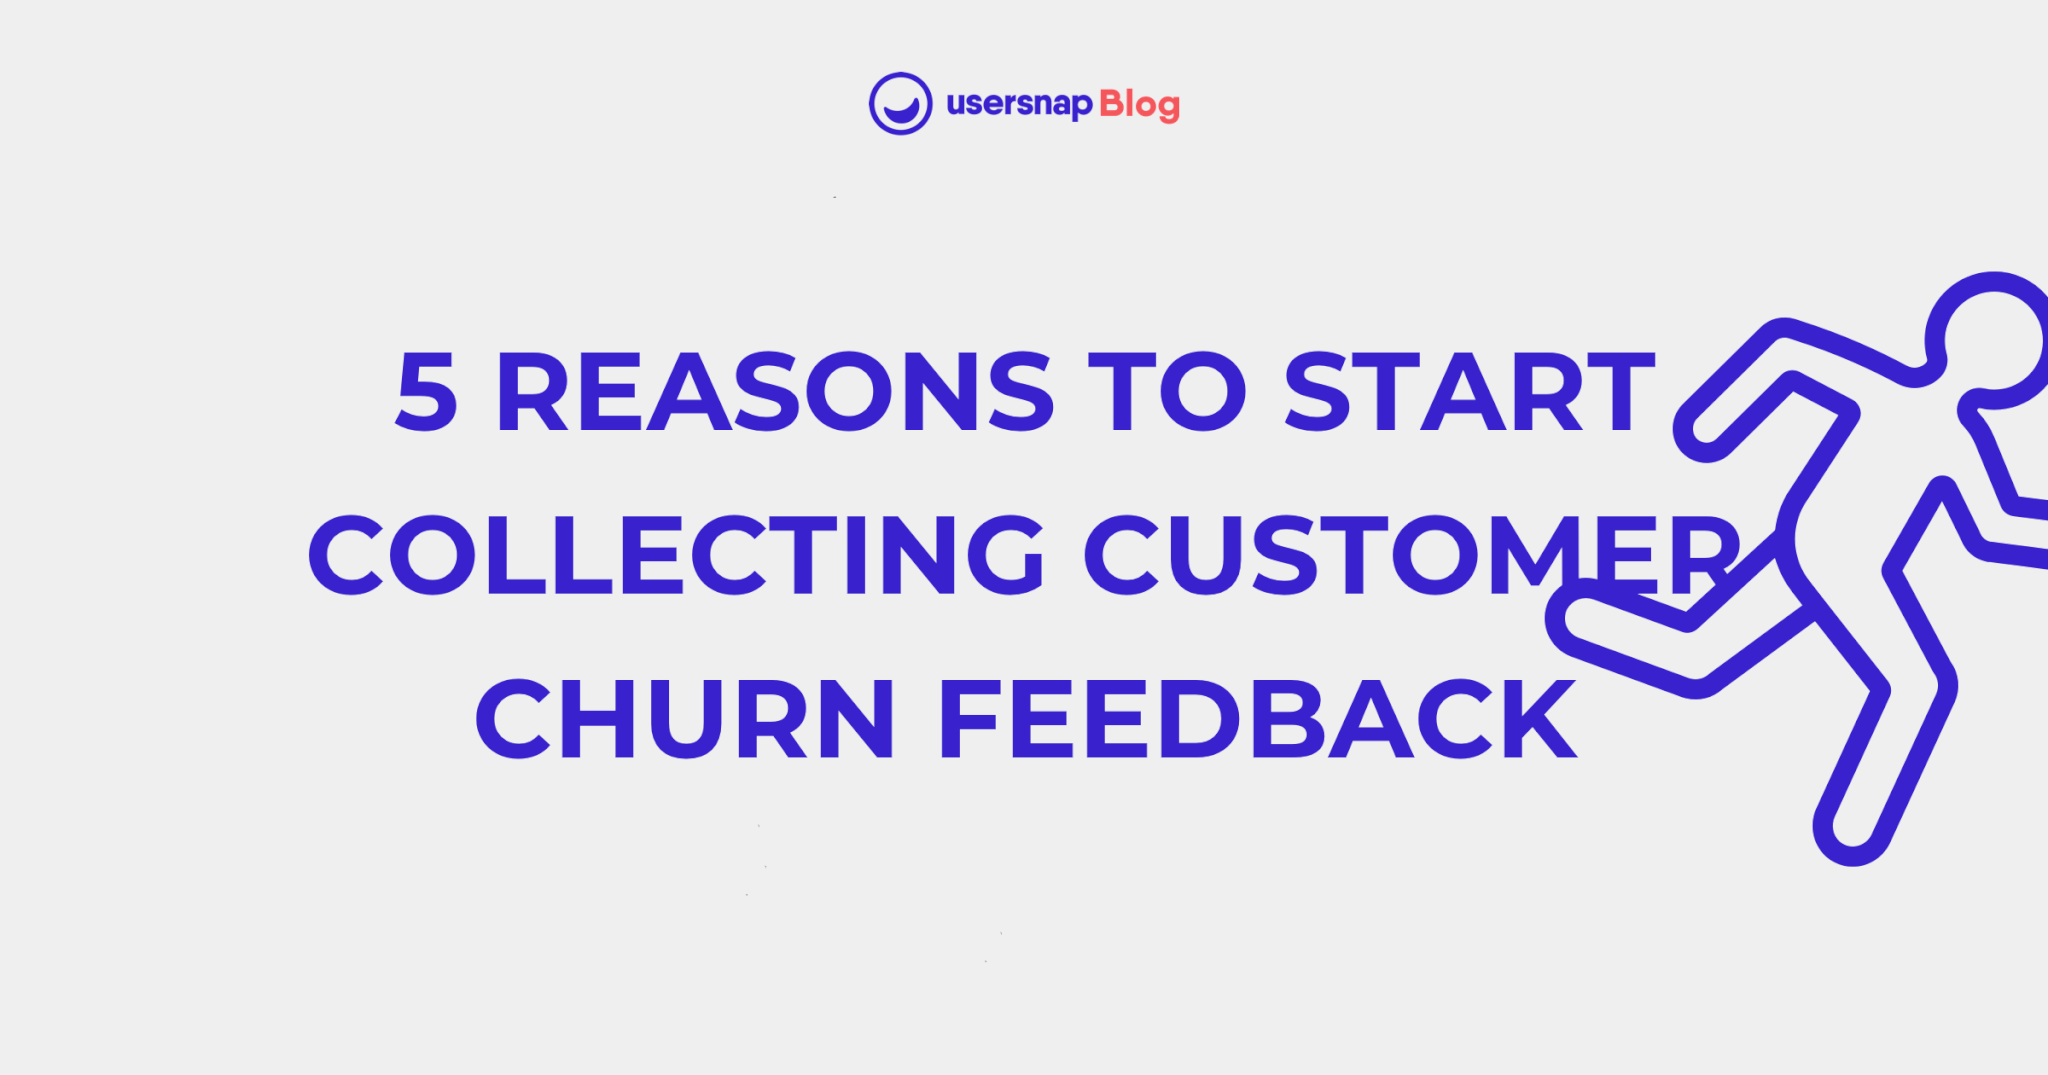 5 Reasons to Start Collecting Customer Churn Feedback